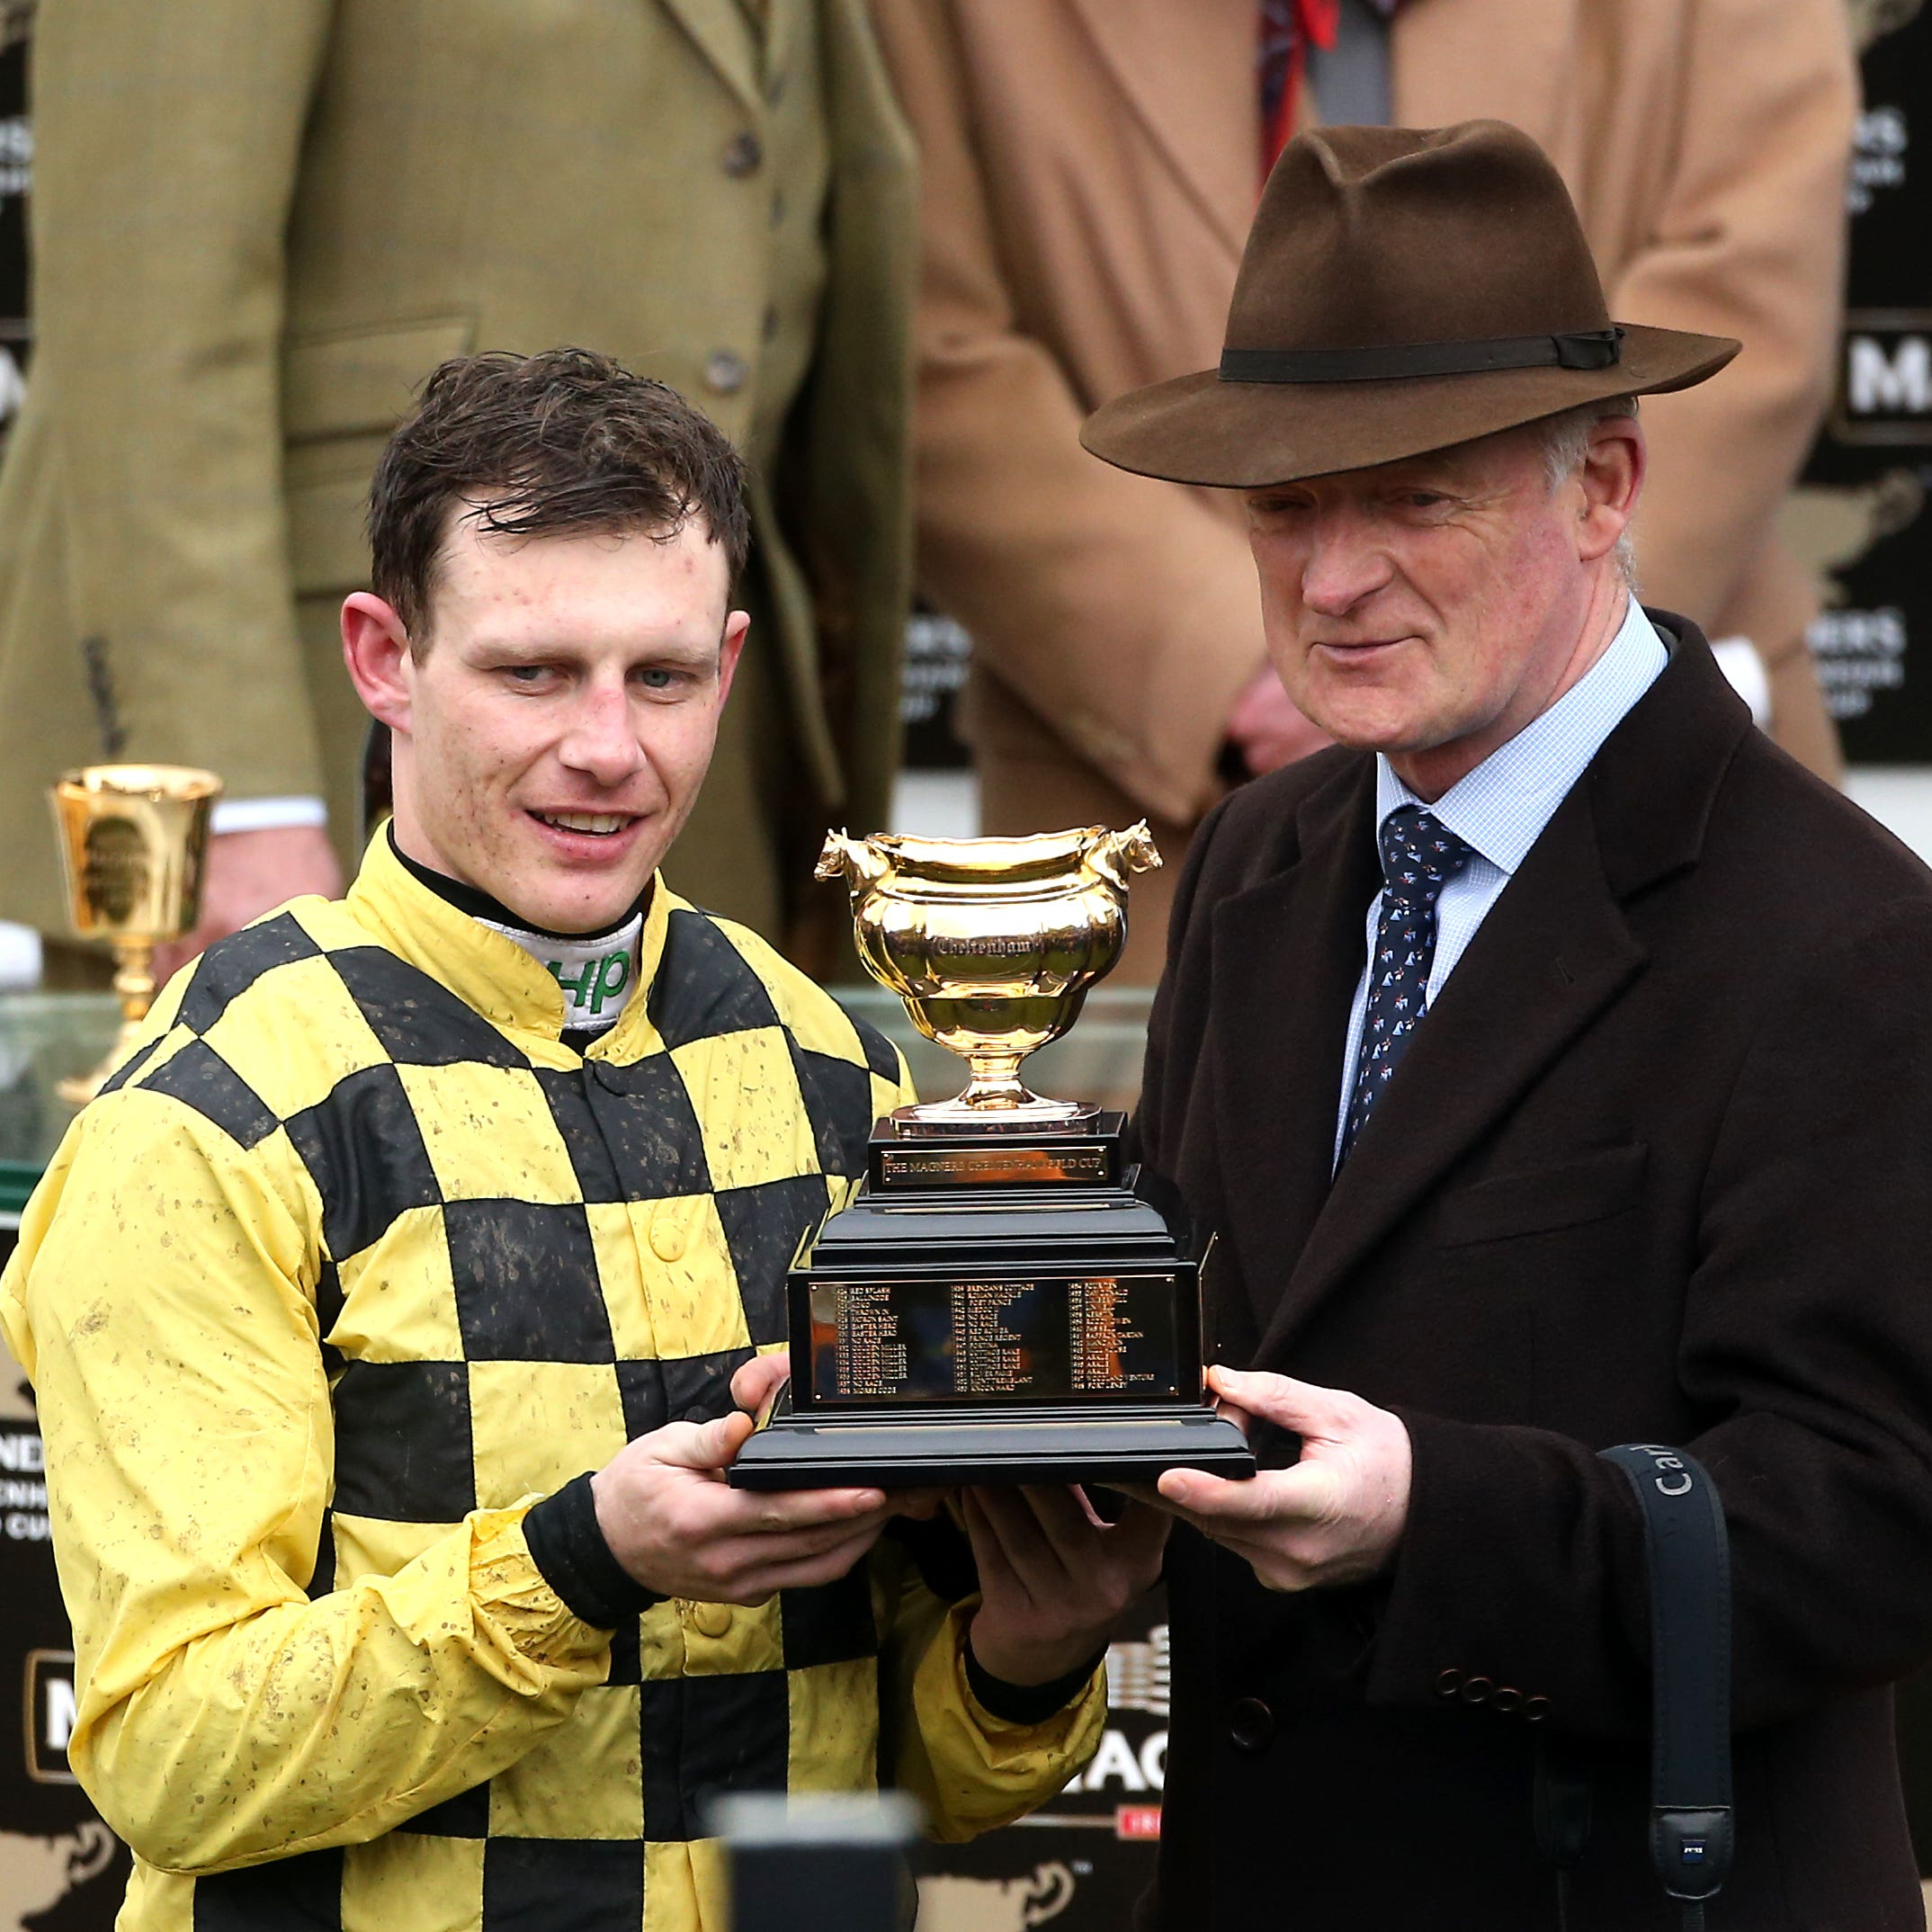 Jockey Paul Townend (left) and trainer Willie Mullins with the trophy after winning the Magners Cheltenham Gold Cup Chase with Al Boum Photo